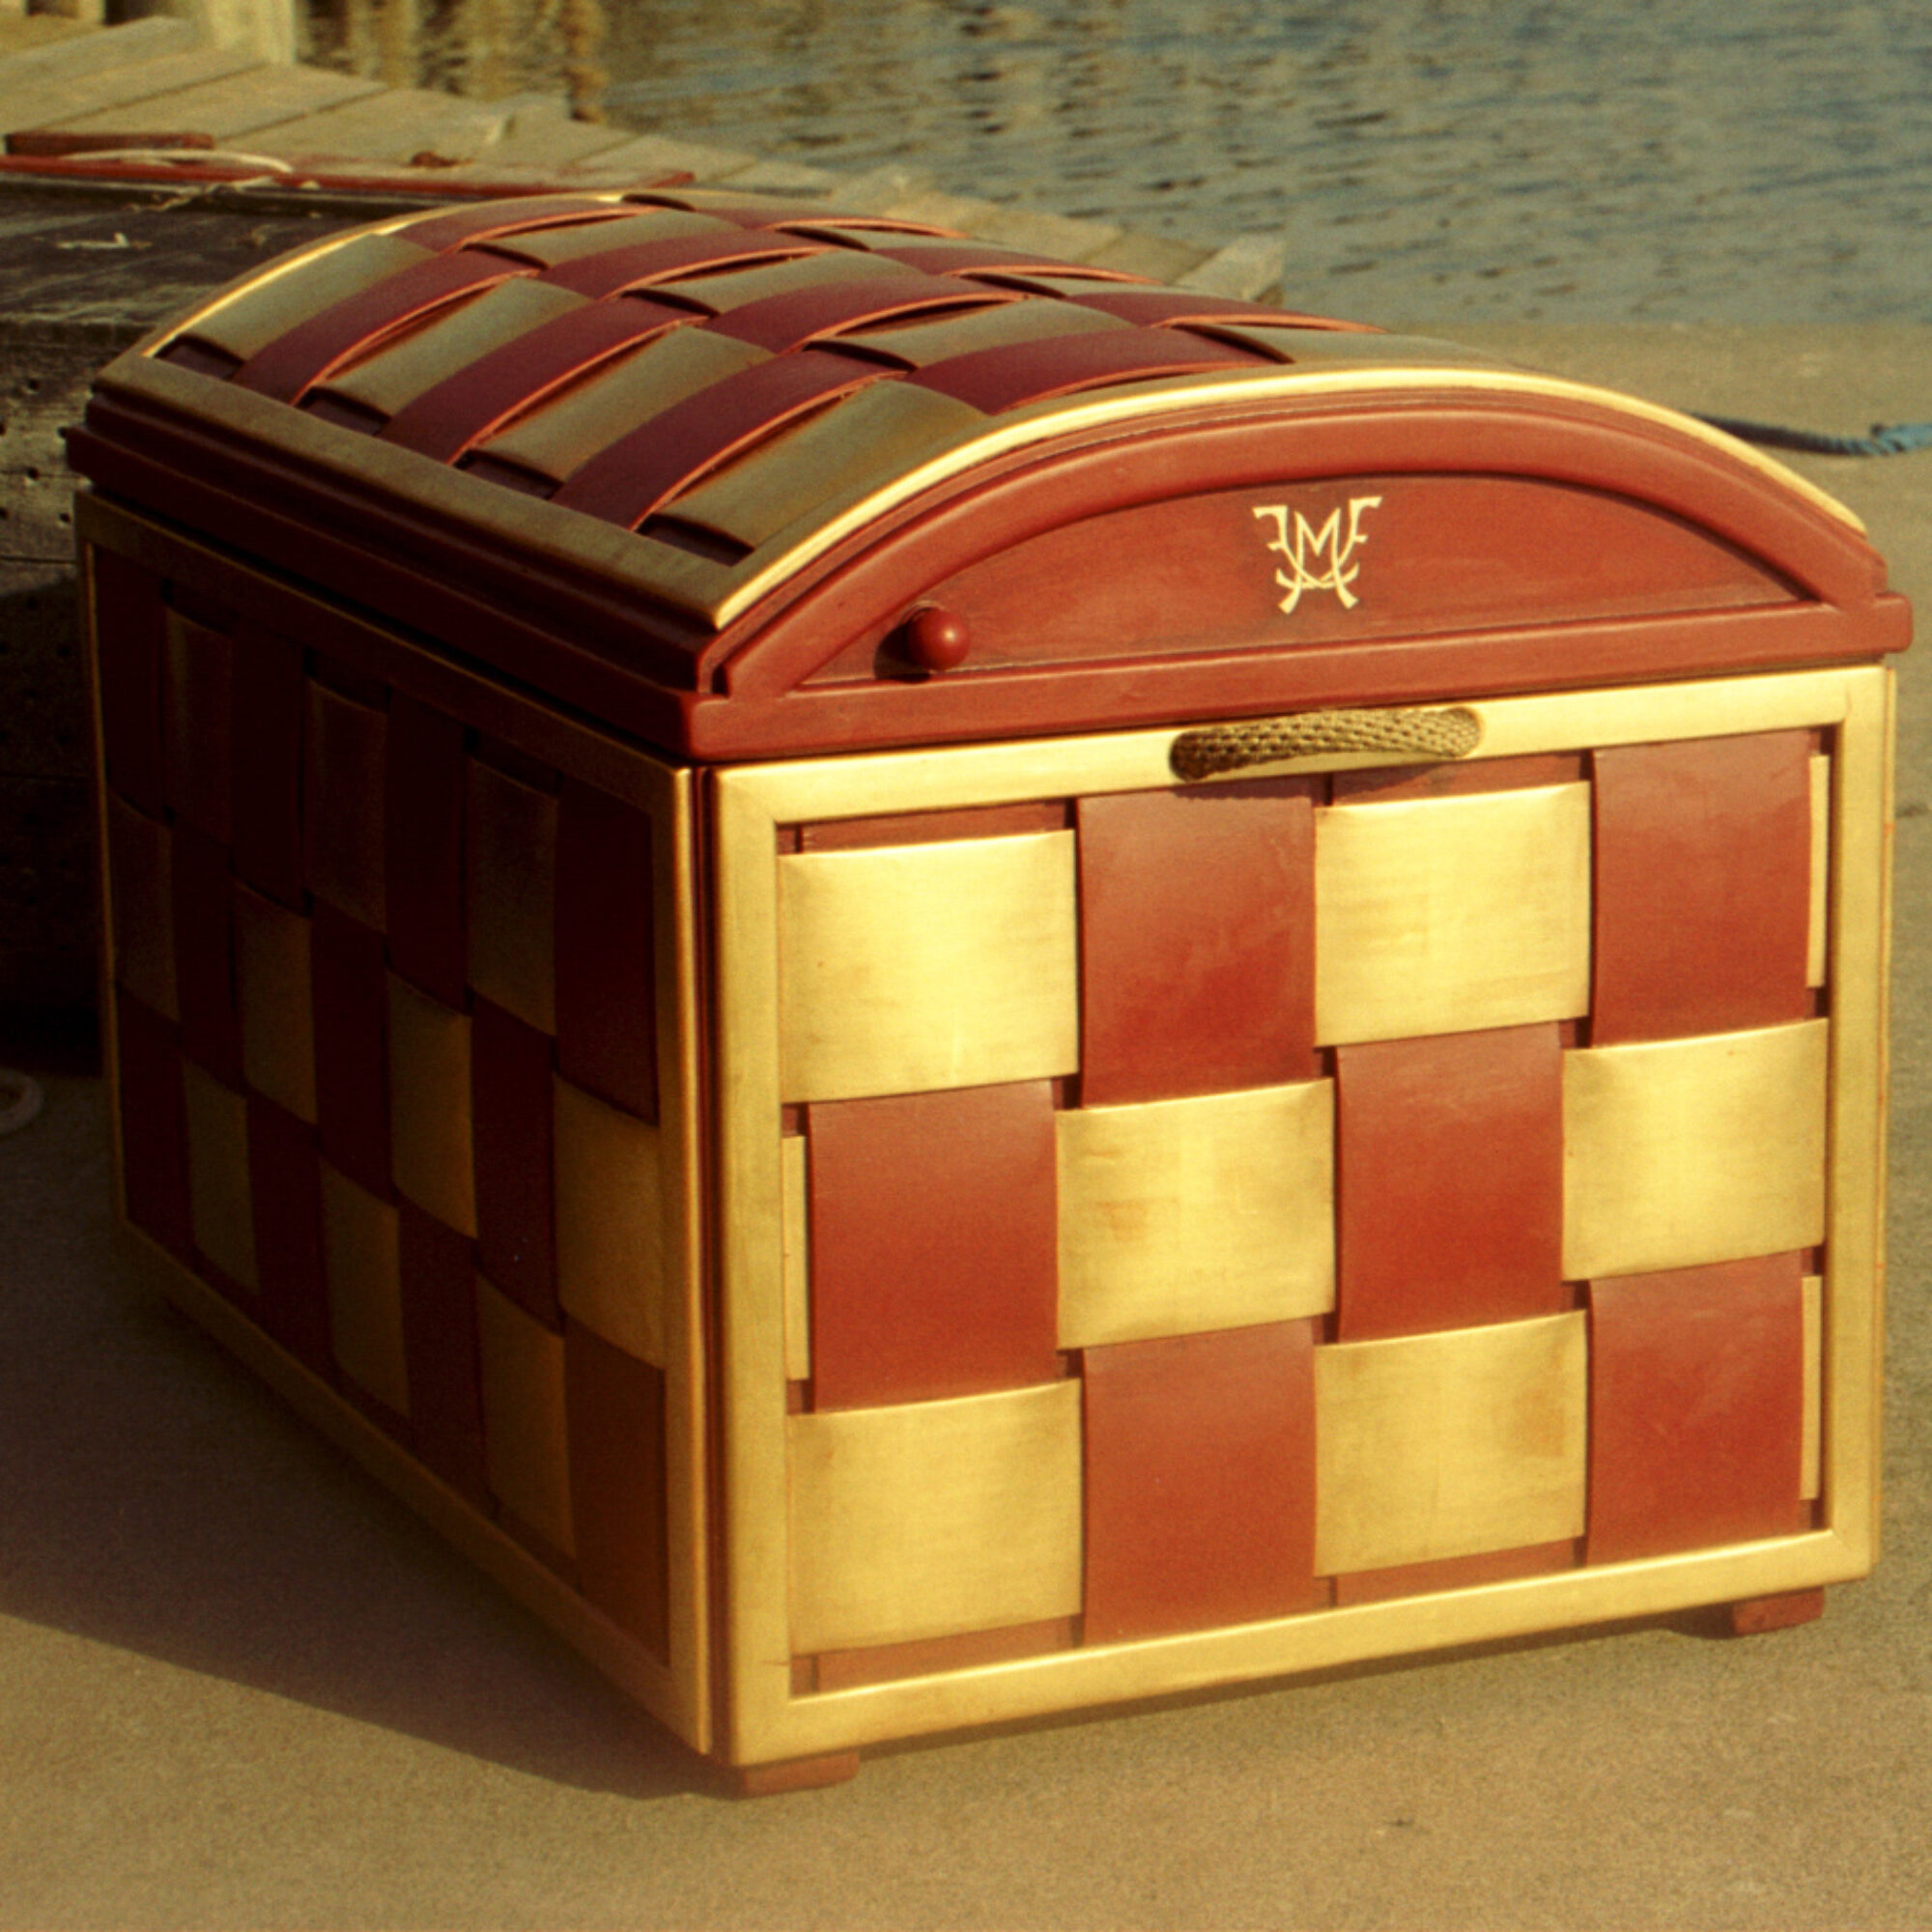 Golden chest for the danish crown prince family